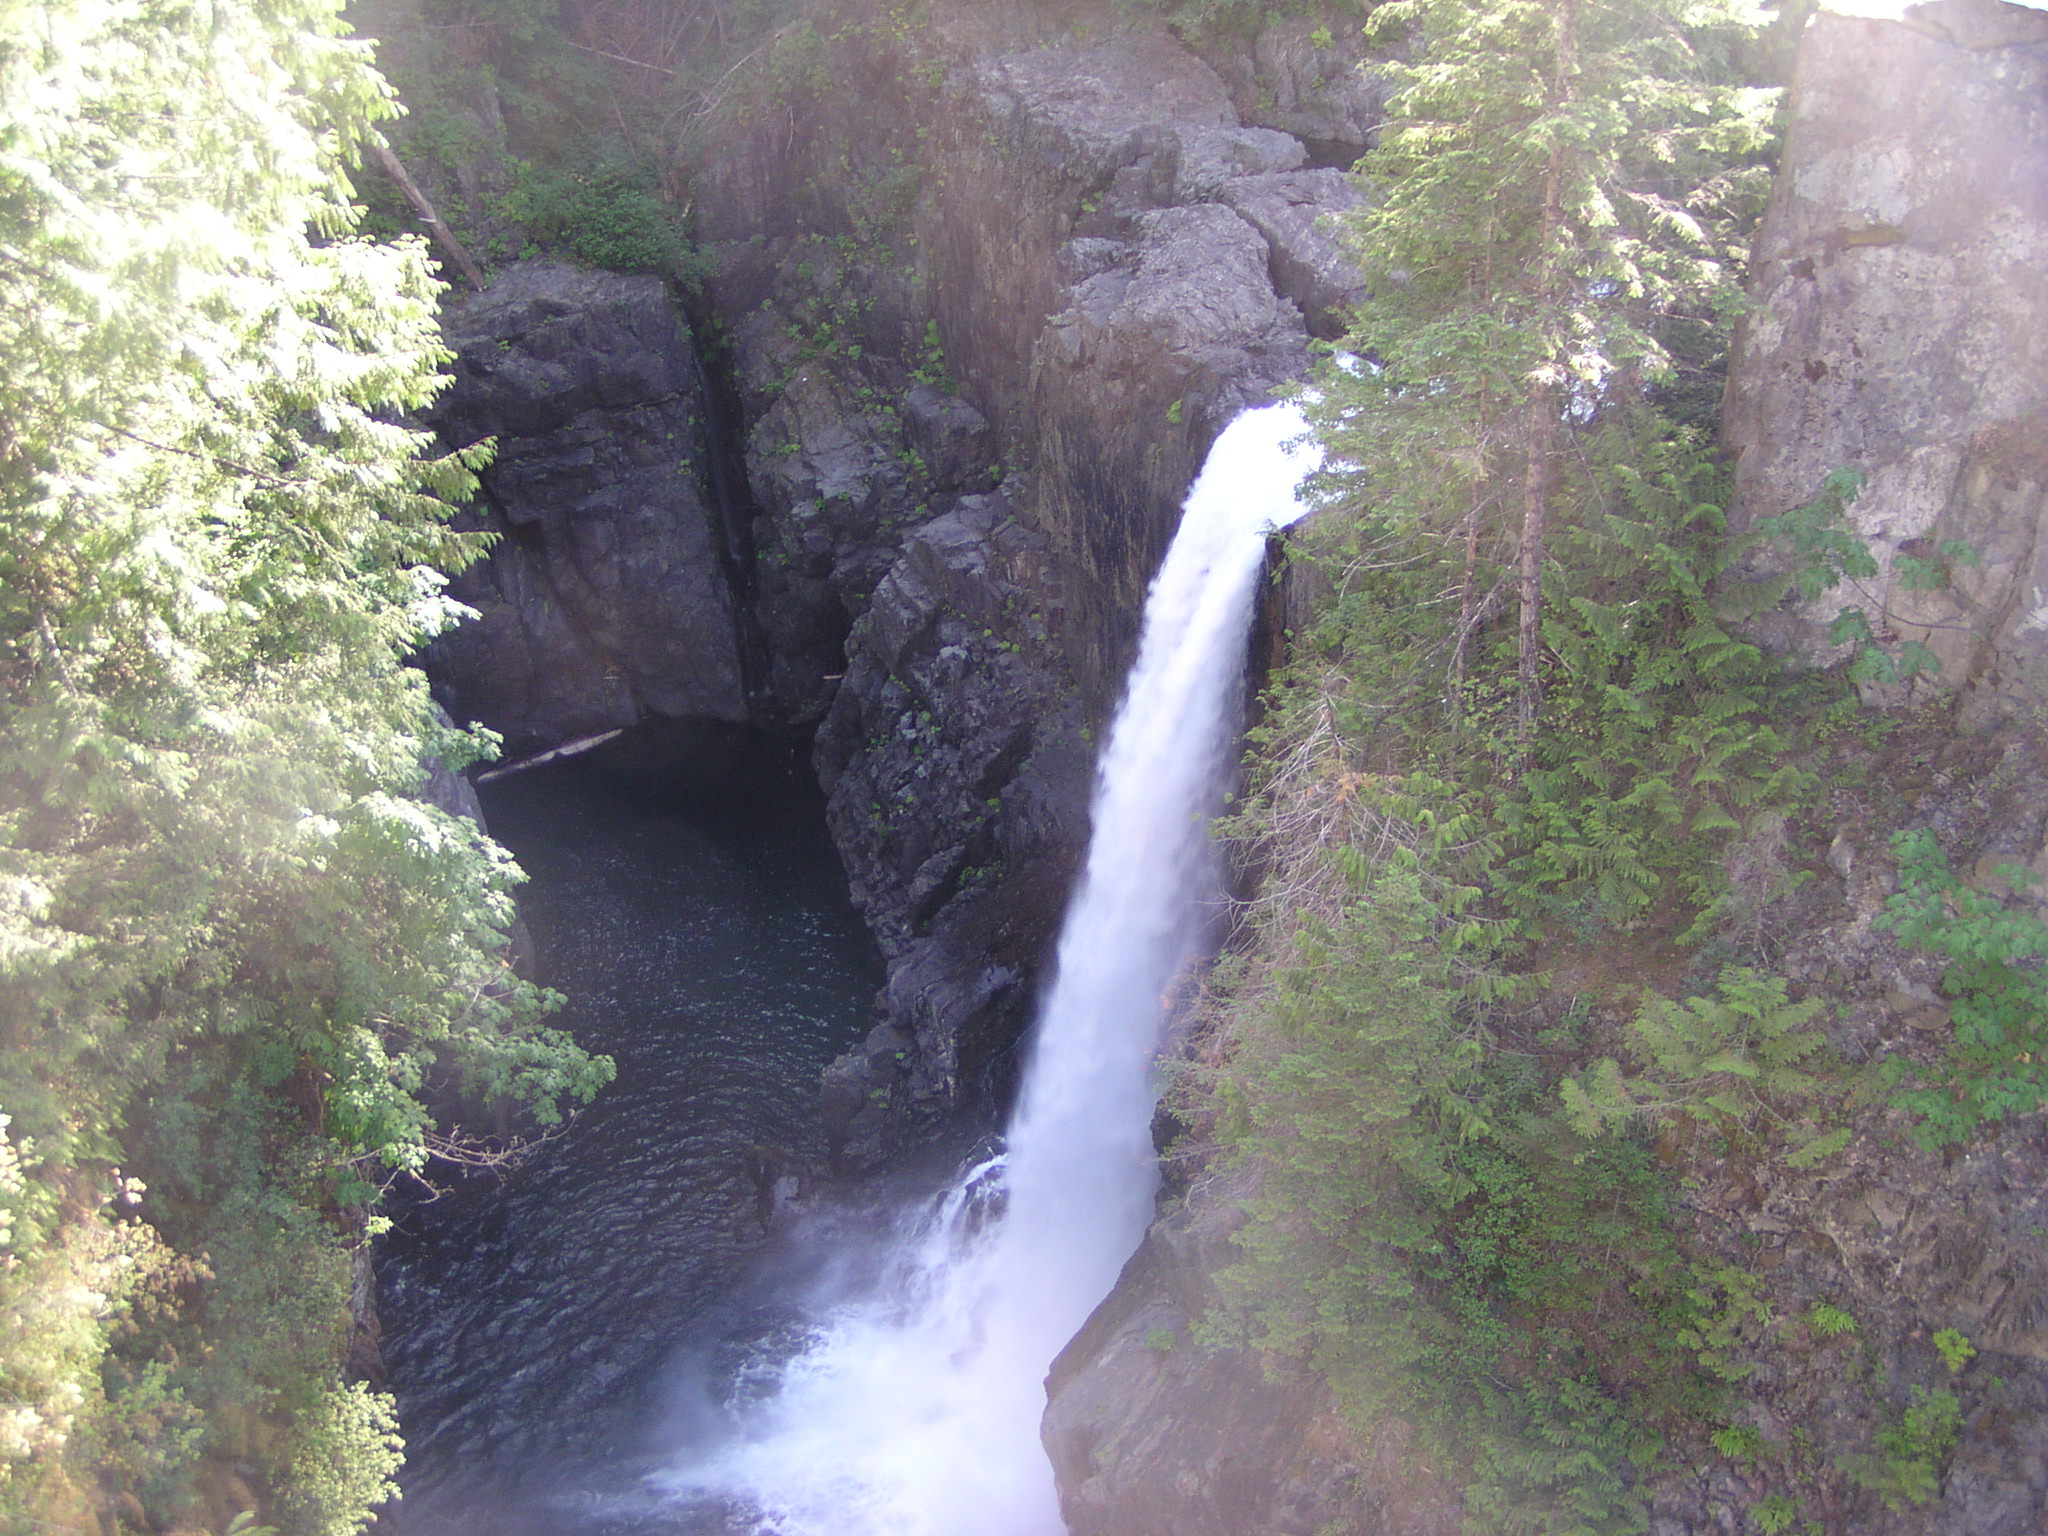 elk falls chat sites Vancouver island w elcome elk falls provincial park is located 3 kilometres north of the city of campbell river on hwy 28 this park gets.